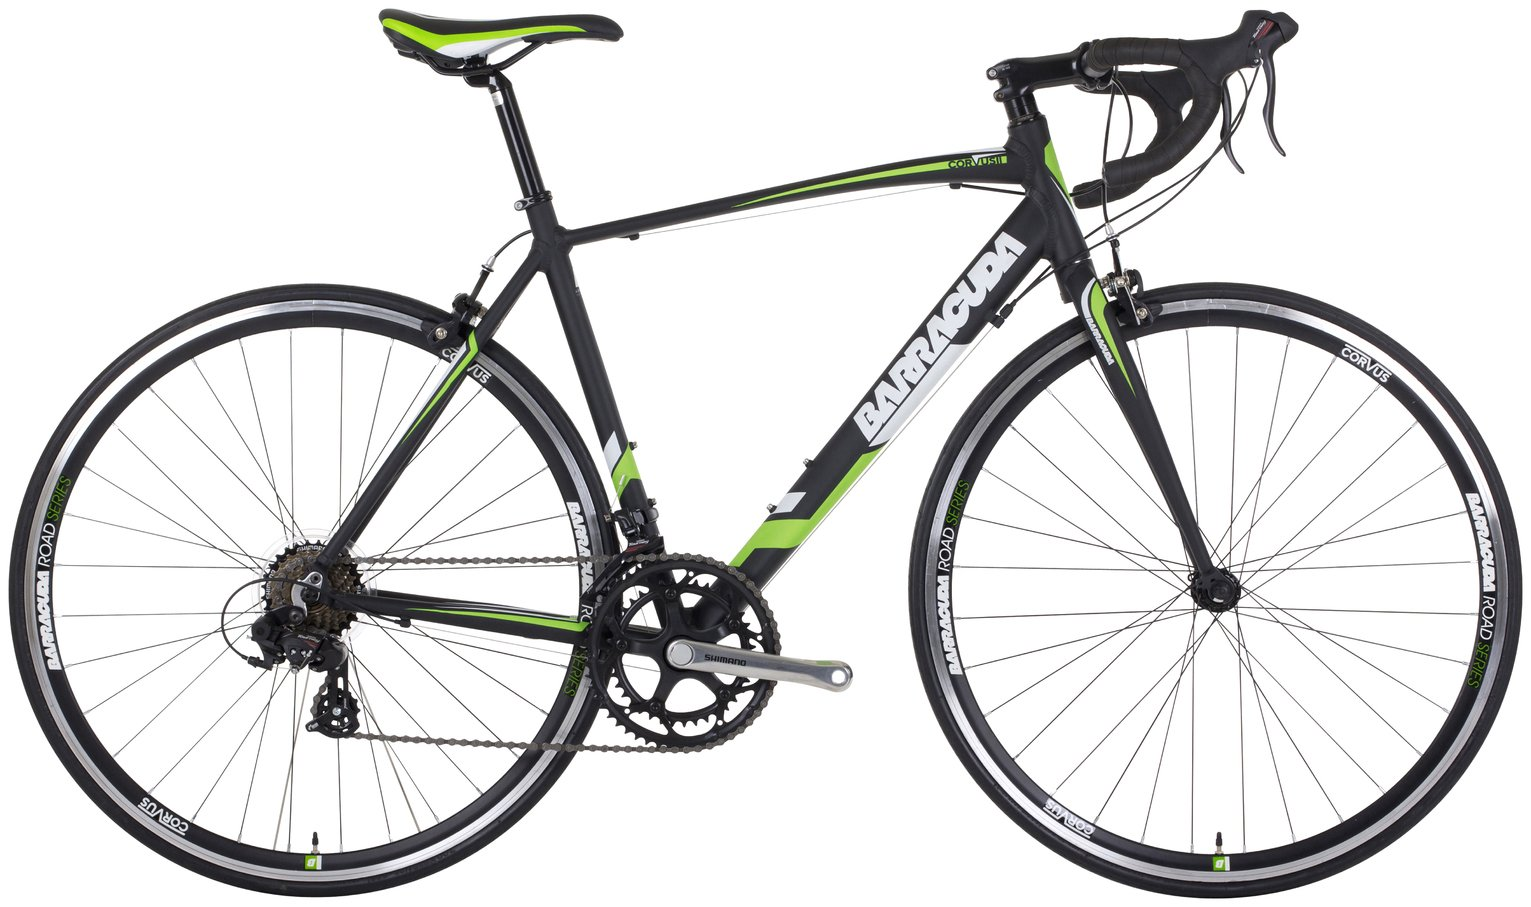 Image of Barracuda Corvus II 21 Inch Road Bike - Unisex